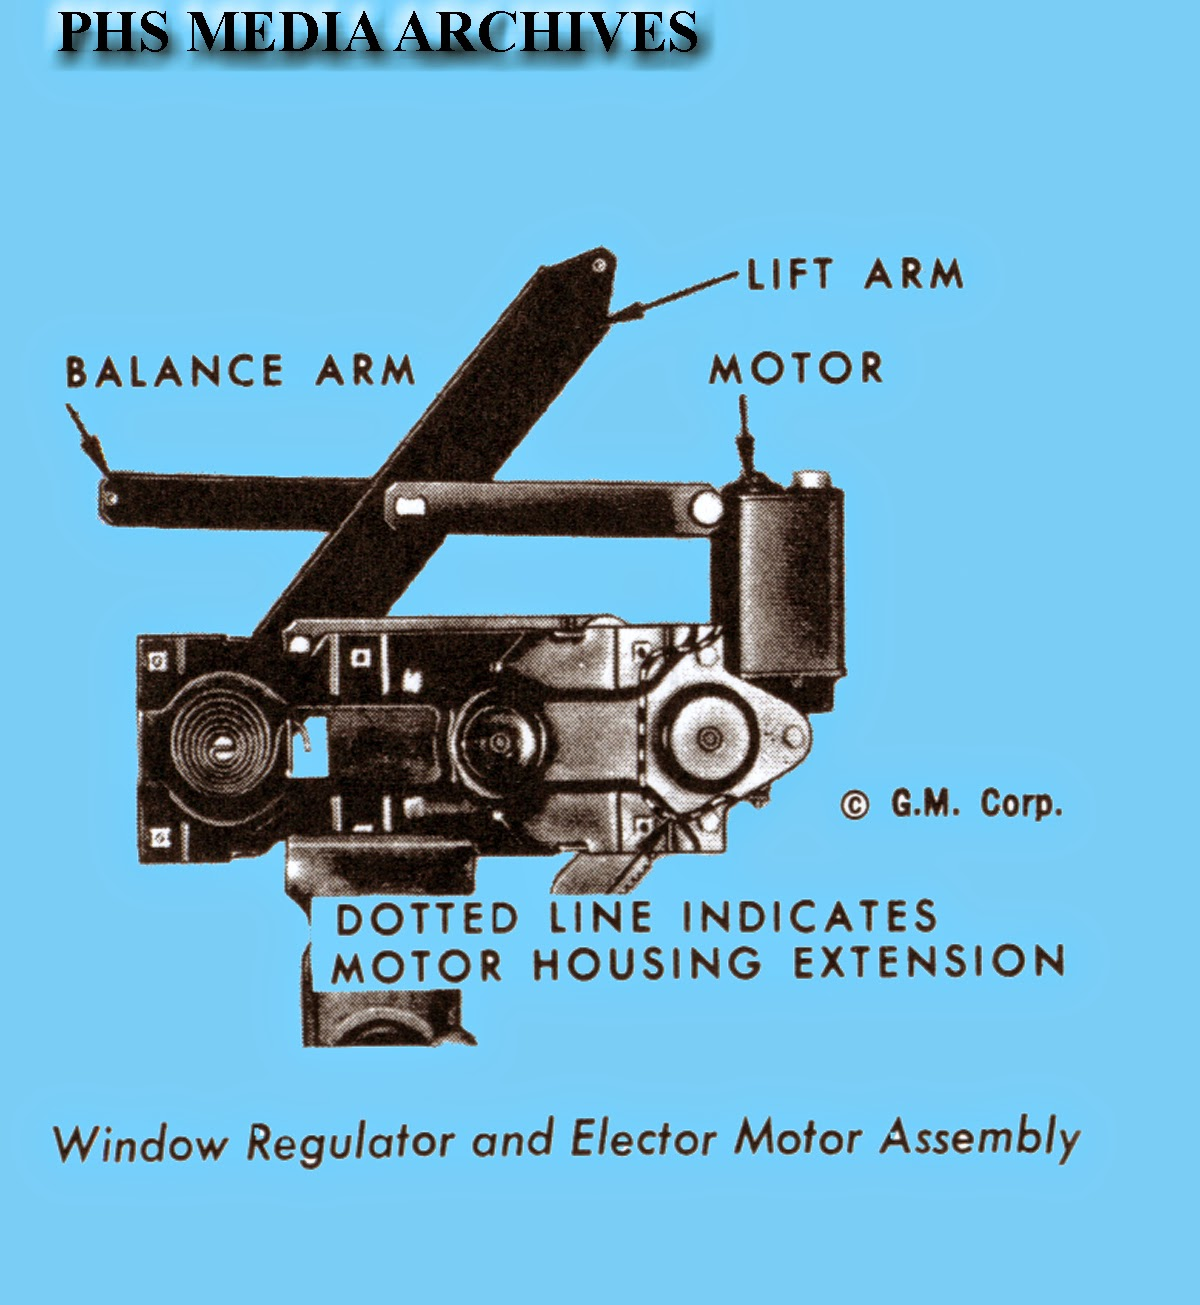 hight resolution of this is what the power window motor looks like when attached to lift and balance arms